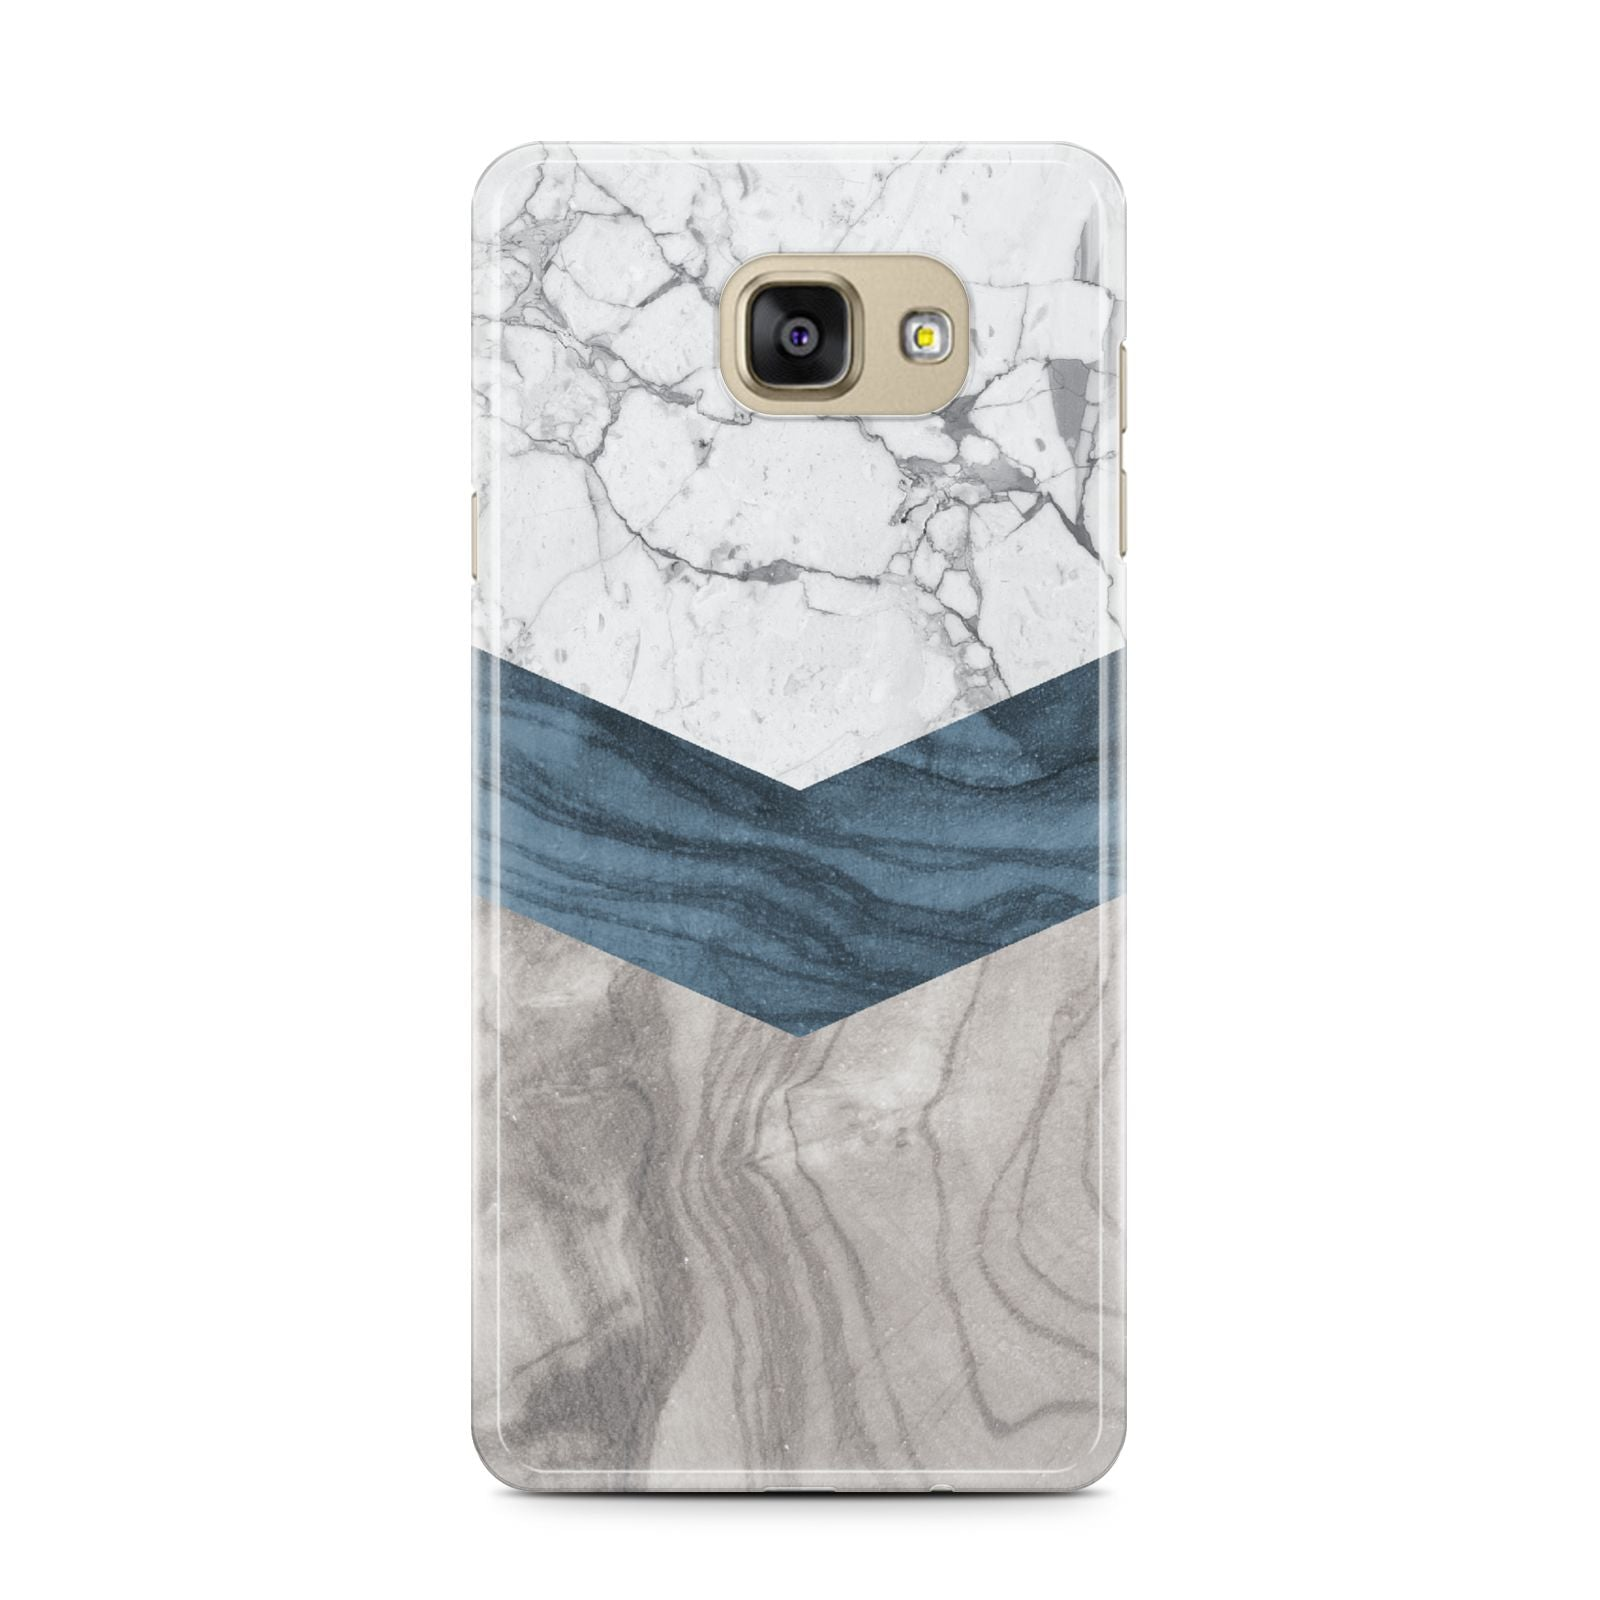 Marble Wood Geometric 8 Samsung Galaxy A7 2016 Case on gold phone